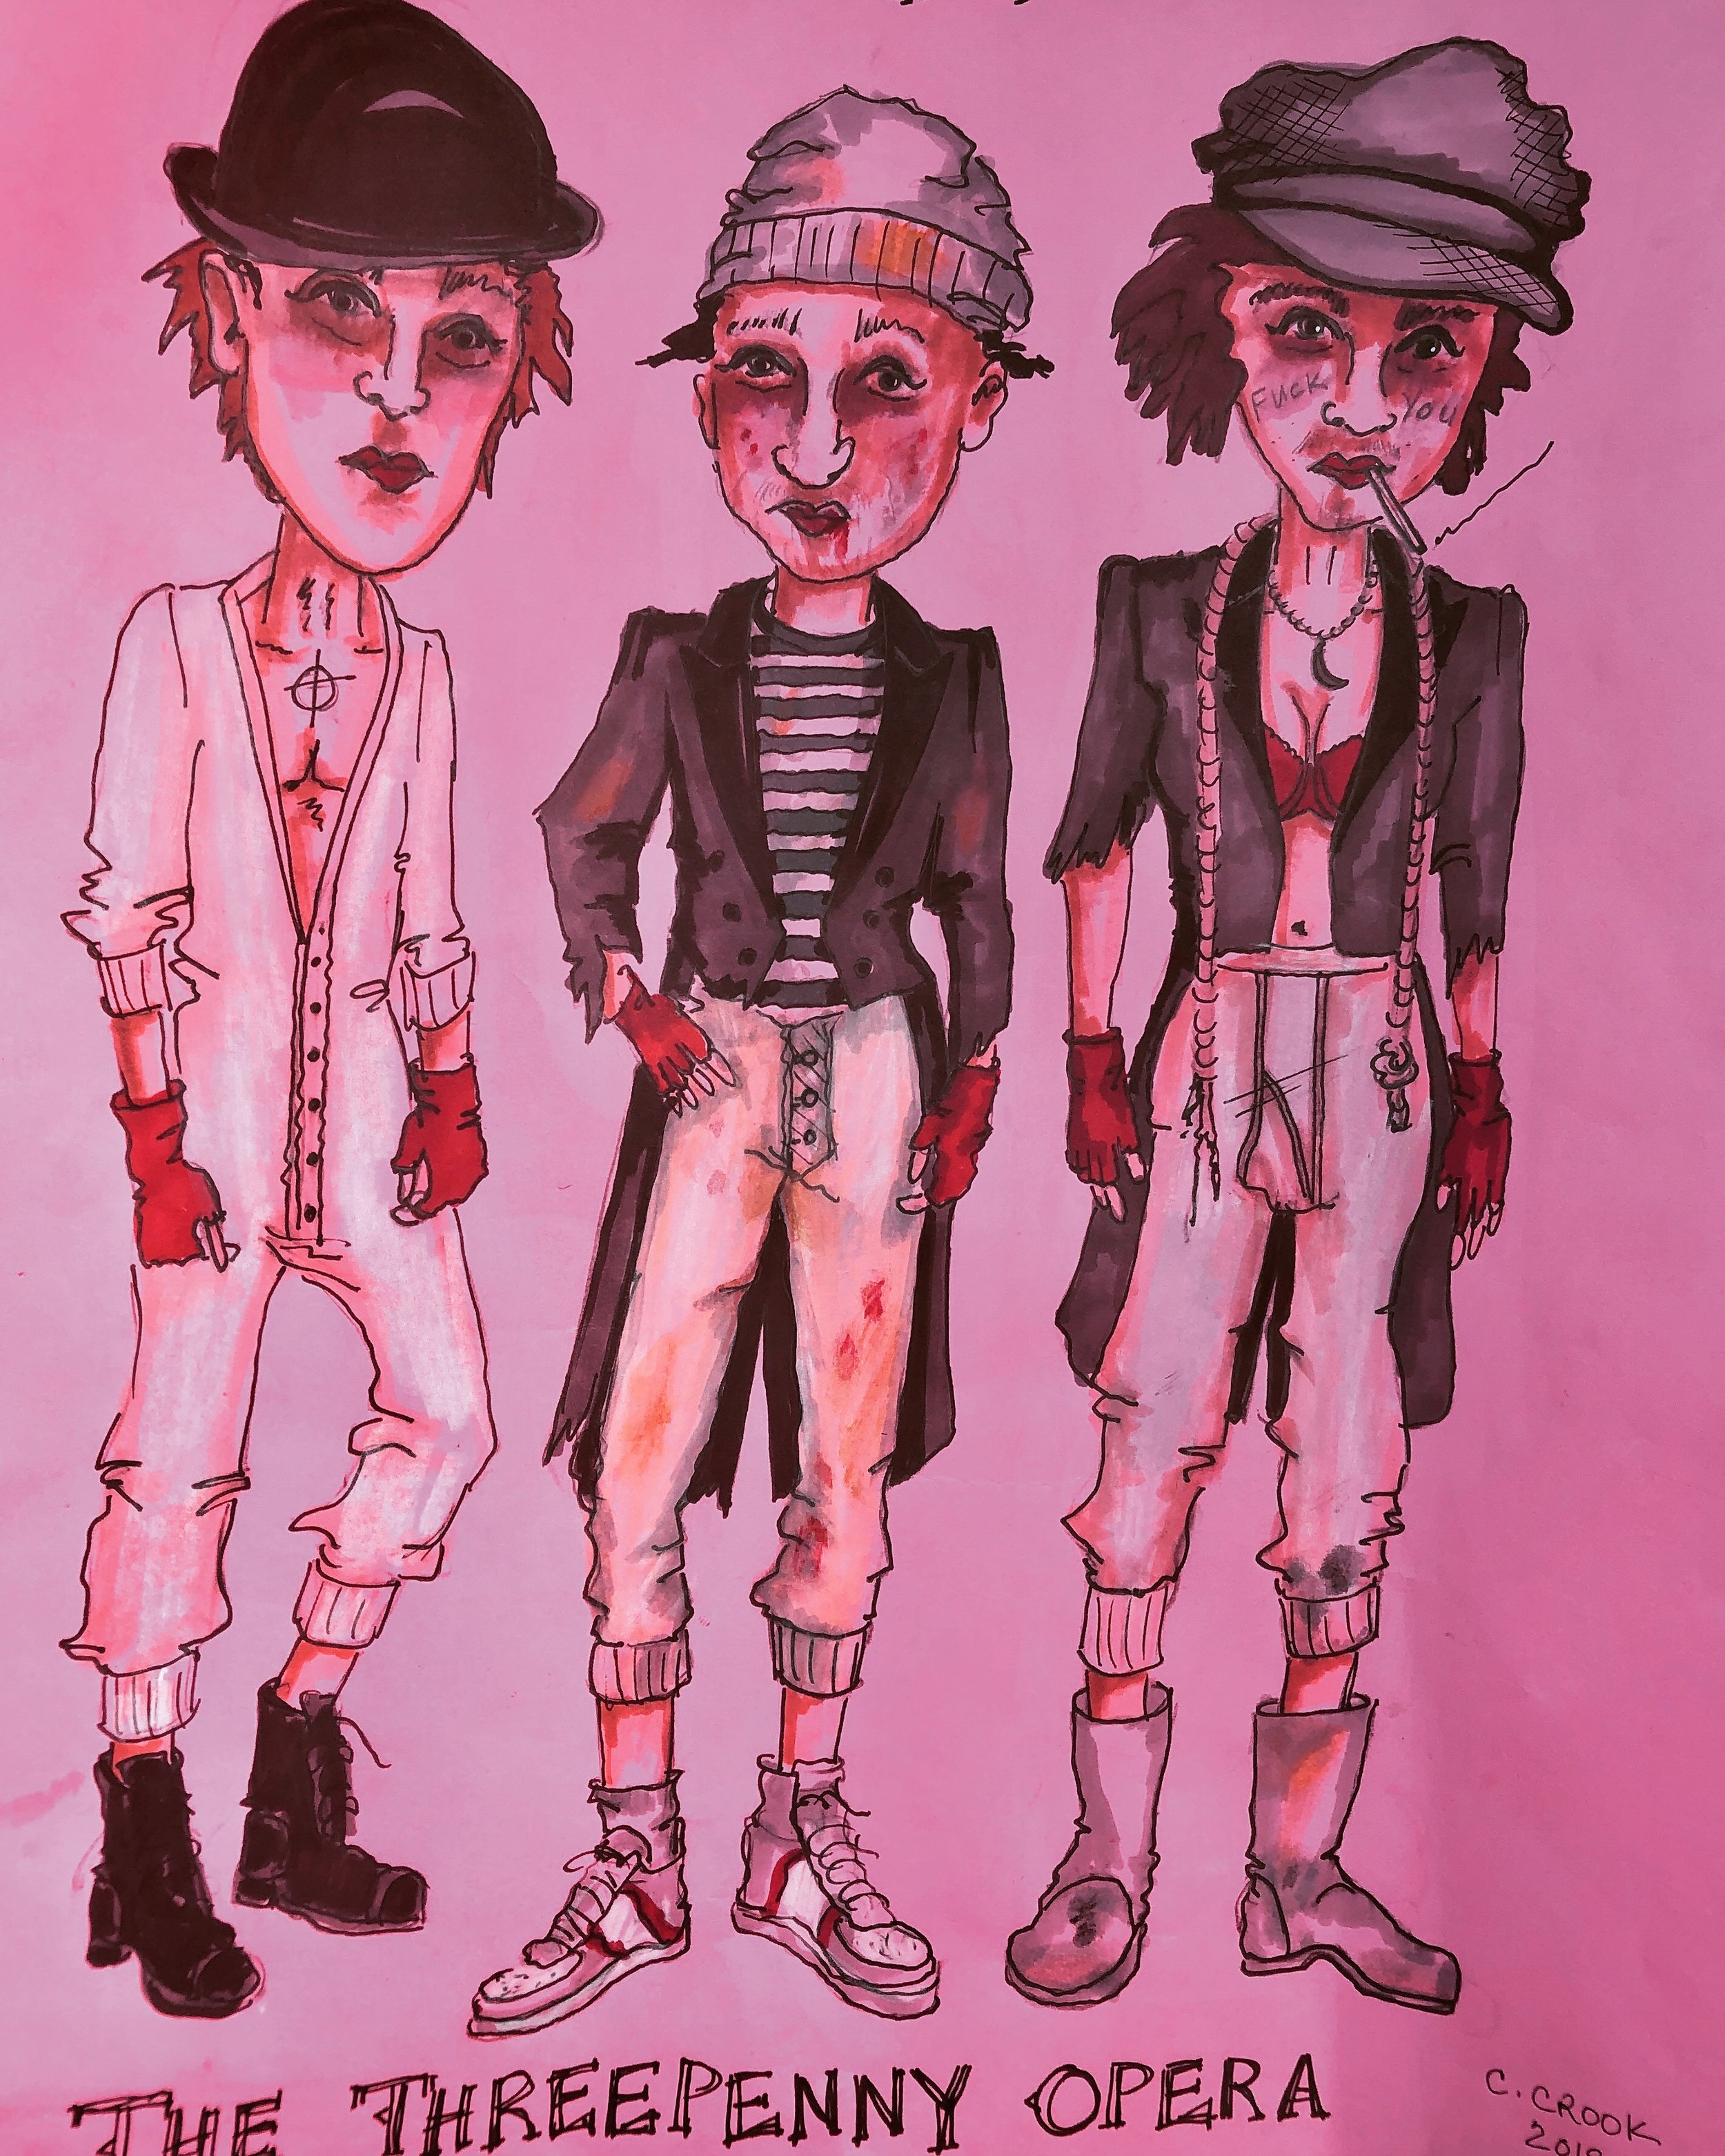 Concept rendering of Mack's gang of thugs